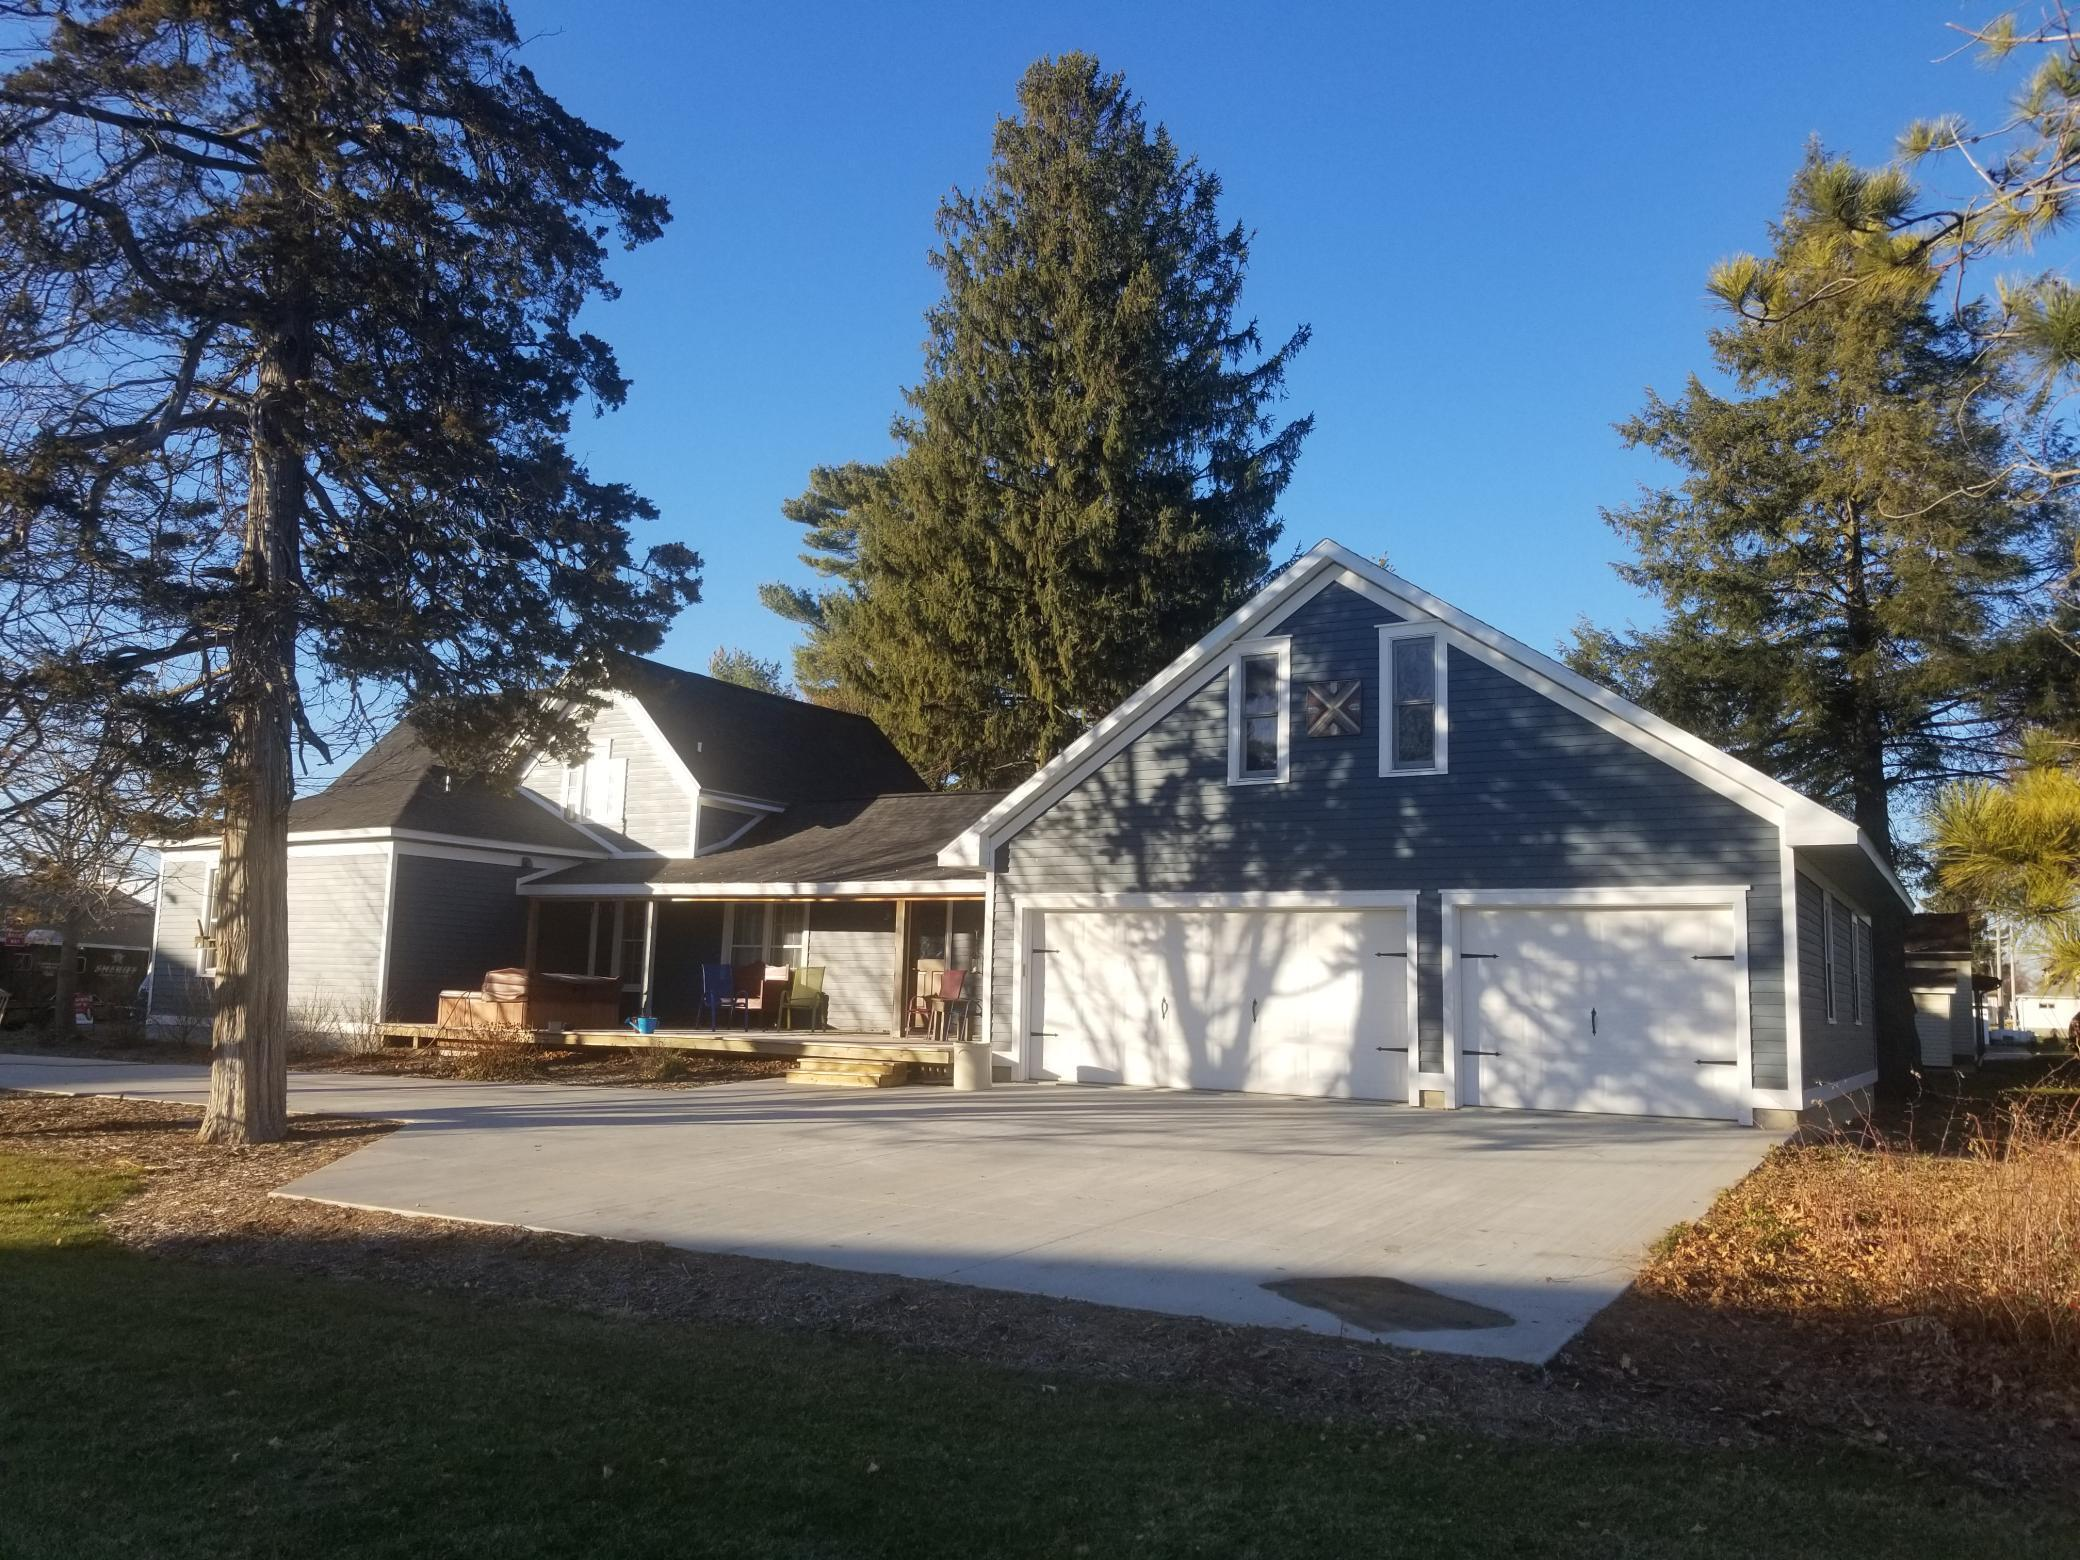 217 S Pine Street Property Photo - Caledonia, MN real estate listing